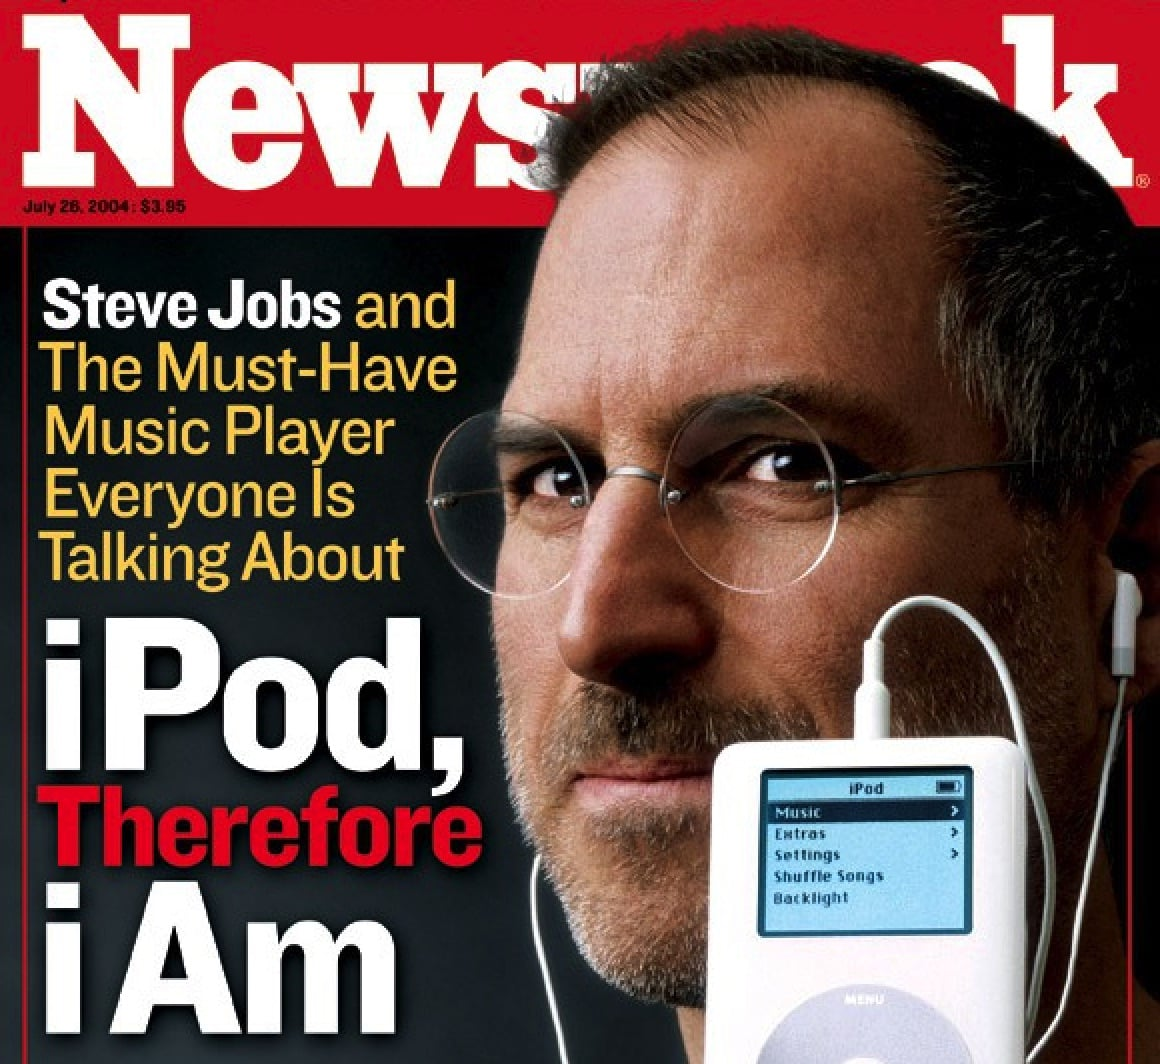 Today in Apple history: Apple puts 1,000 songs in your pocket with first-gen iPod